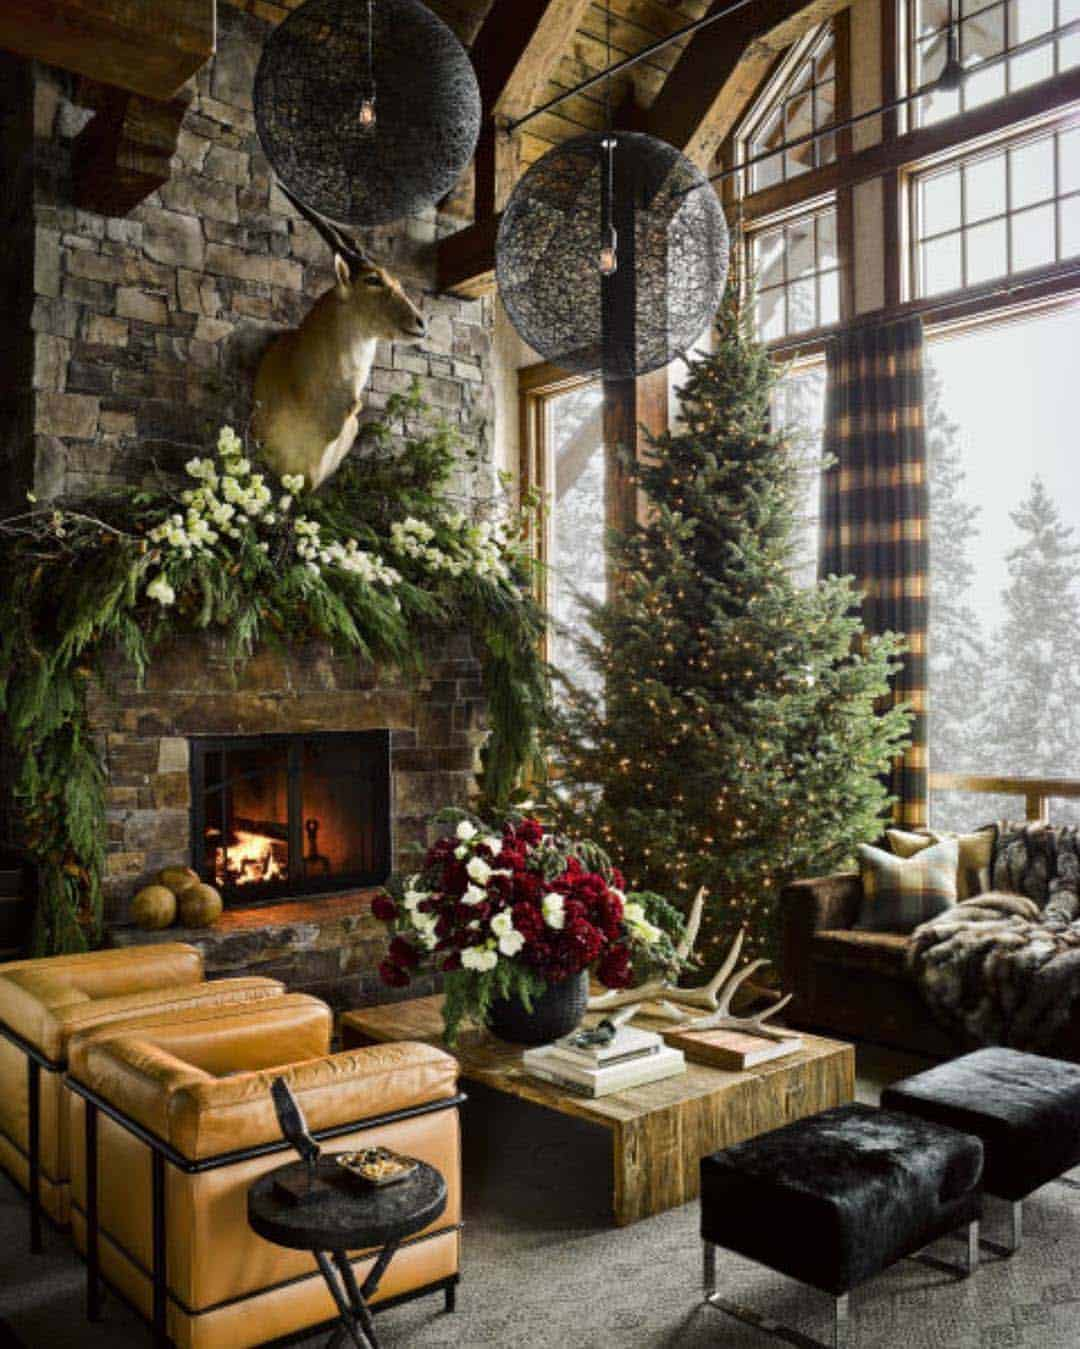 Home Design Ideas And Photos: Montana Guest Retreat Gets A Fabulous Makeover For The Holidays